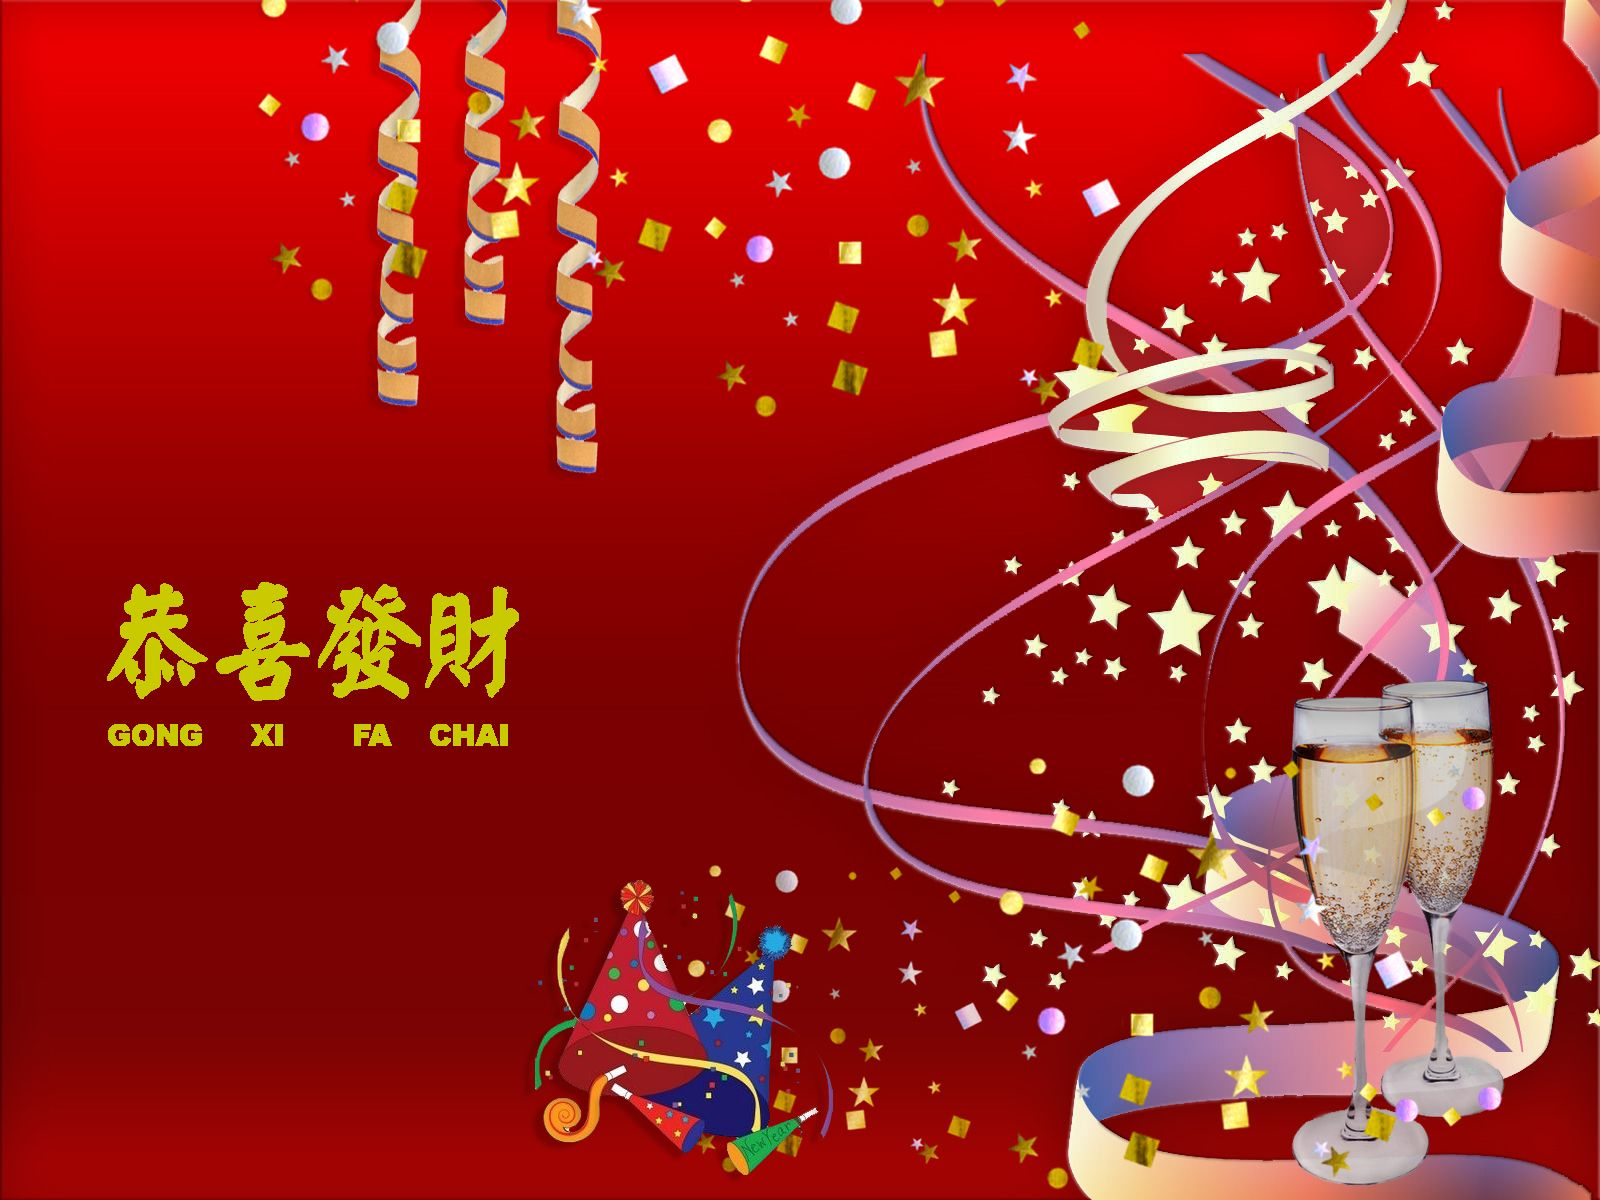 chinese new year greeting card design with lantern and dragon picture hd wallpapers